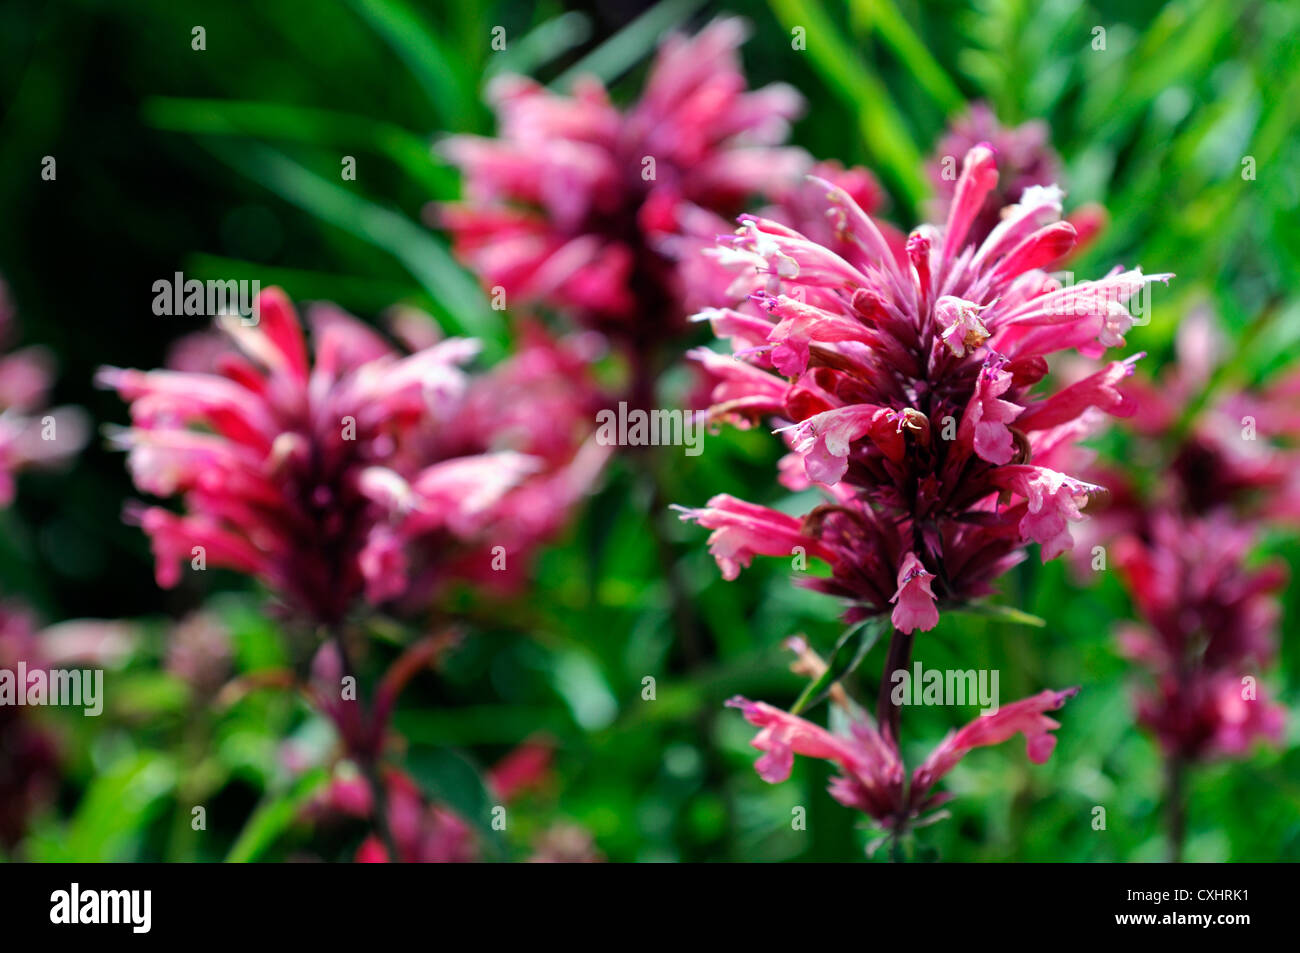 agastache red fortune red flower flowers flowering spires perennials closeup selective focus plant portraits - Stock Image